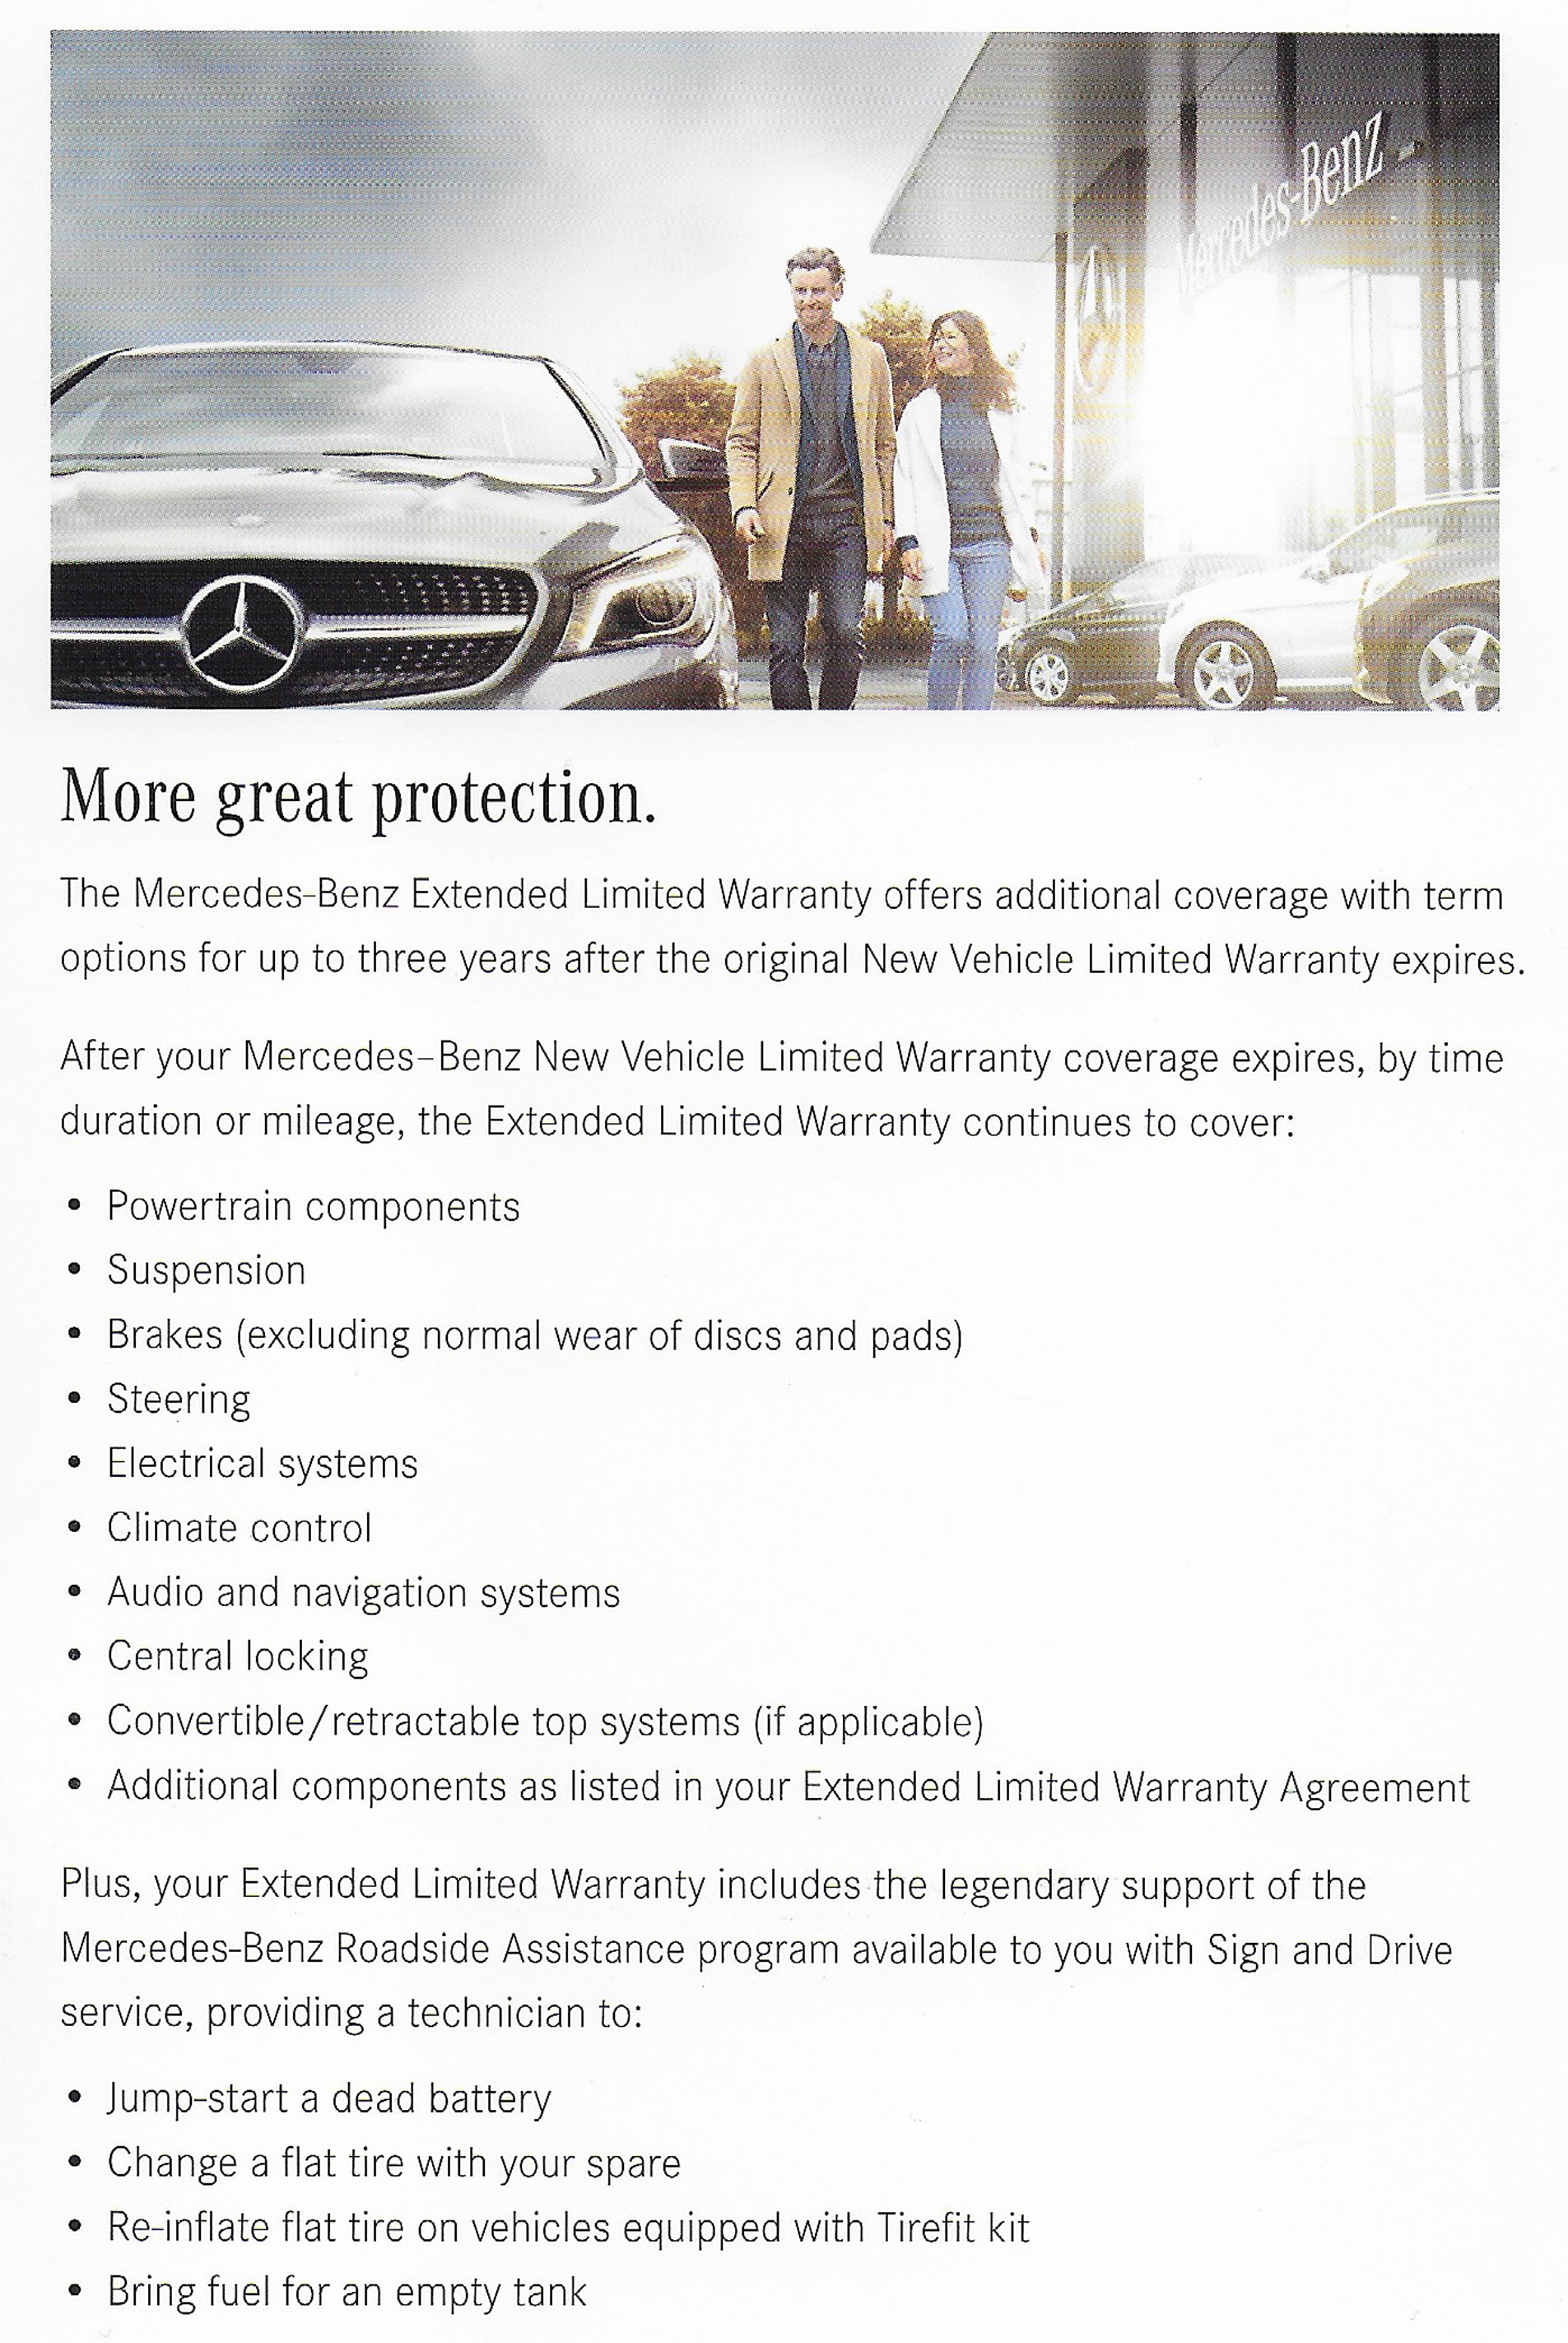 To Purchase The Extended Limited Warranty Or To Learn More, Please Visit An  Authorized Mercedes Benz Dealership. To Locate A Dealership, Visit  MBUSA.com Or ...